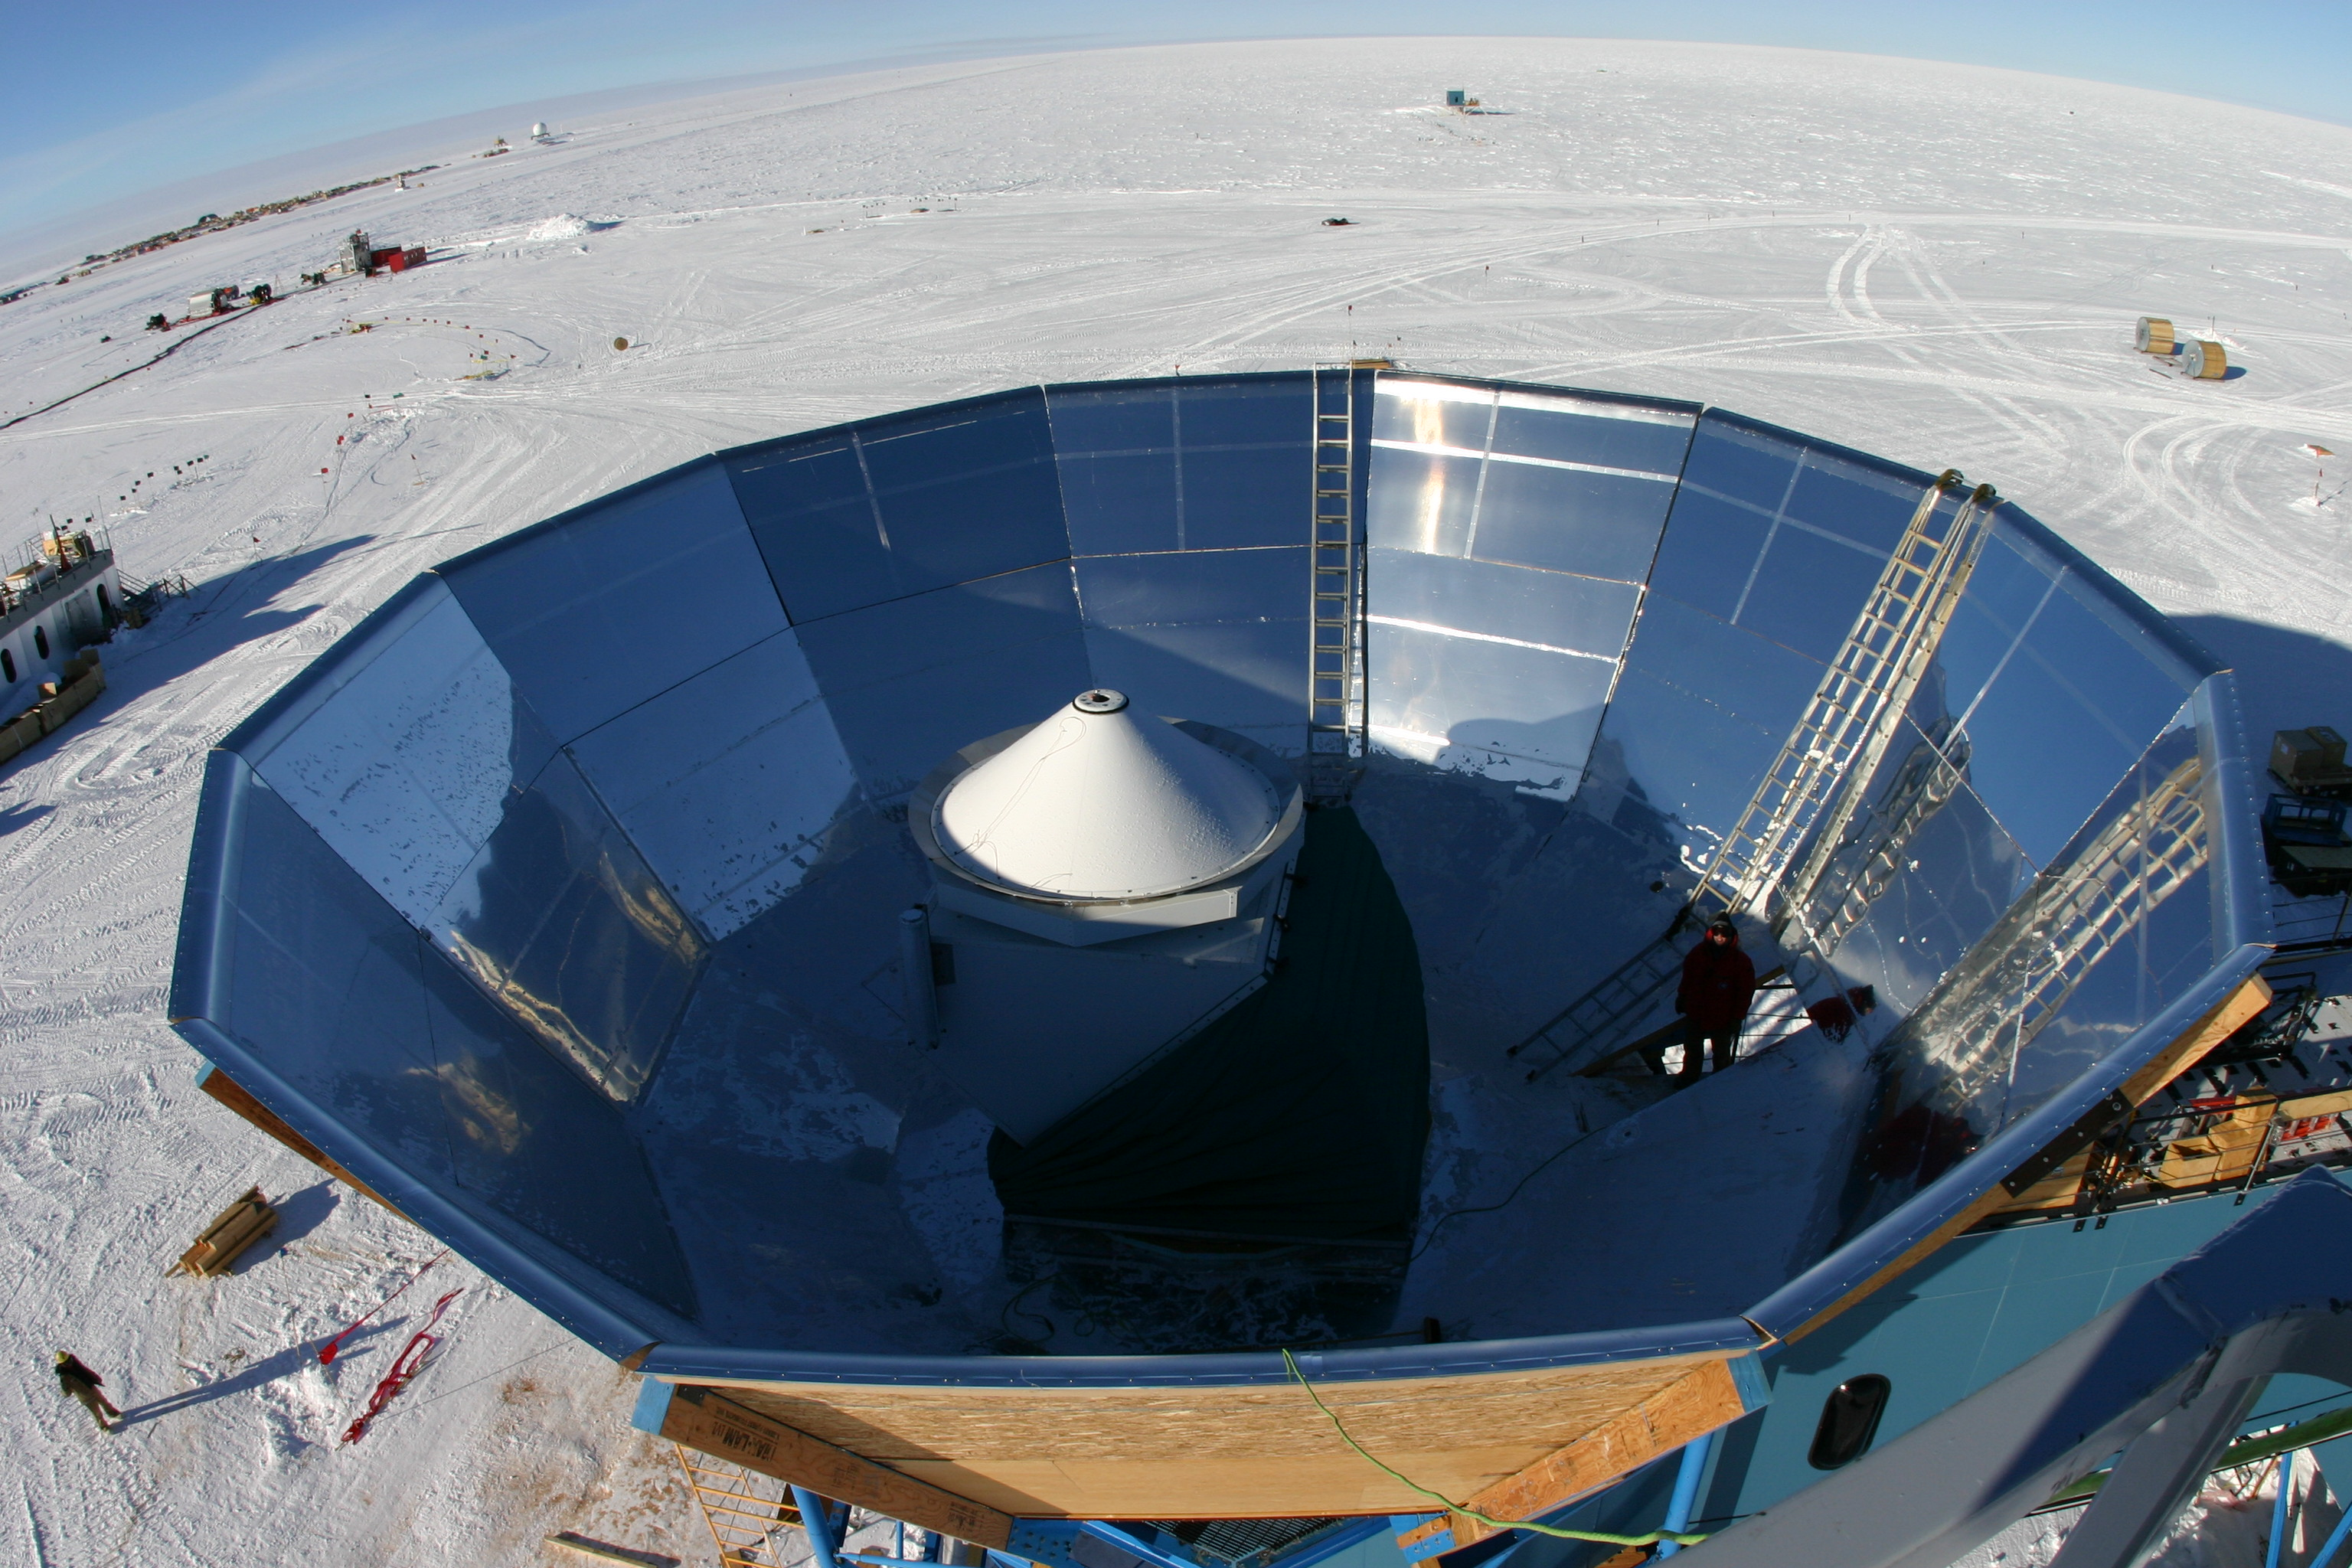 A photograph of the QUaD telescope inside its groundshield taken from a crane above the telescope.